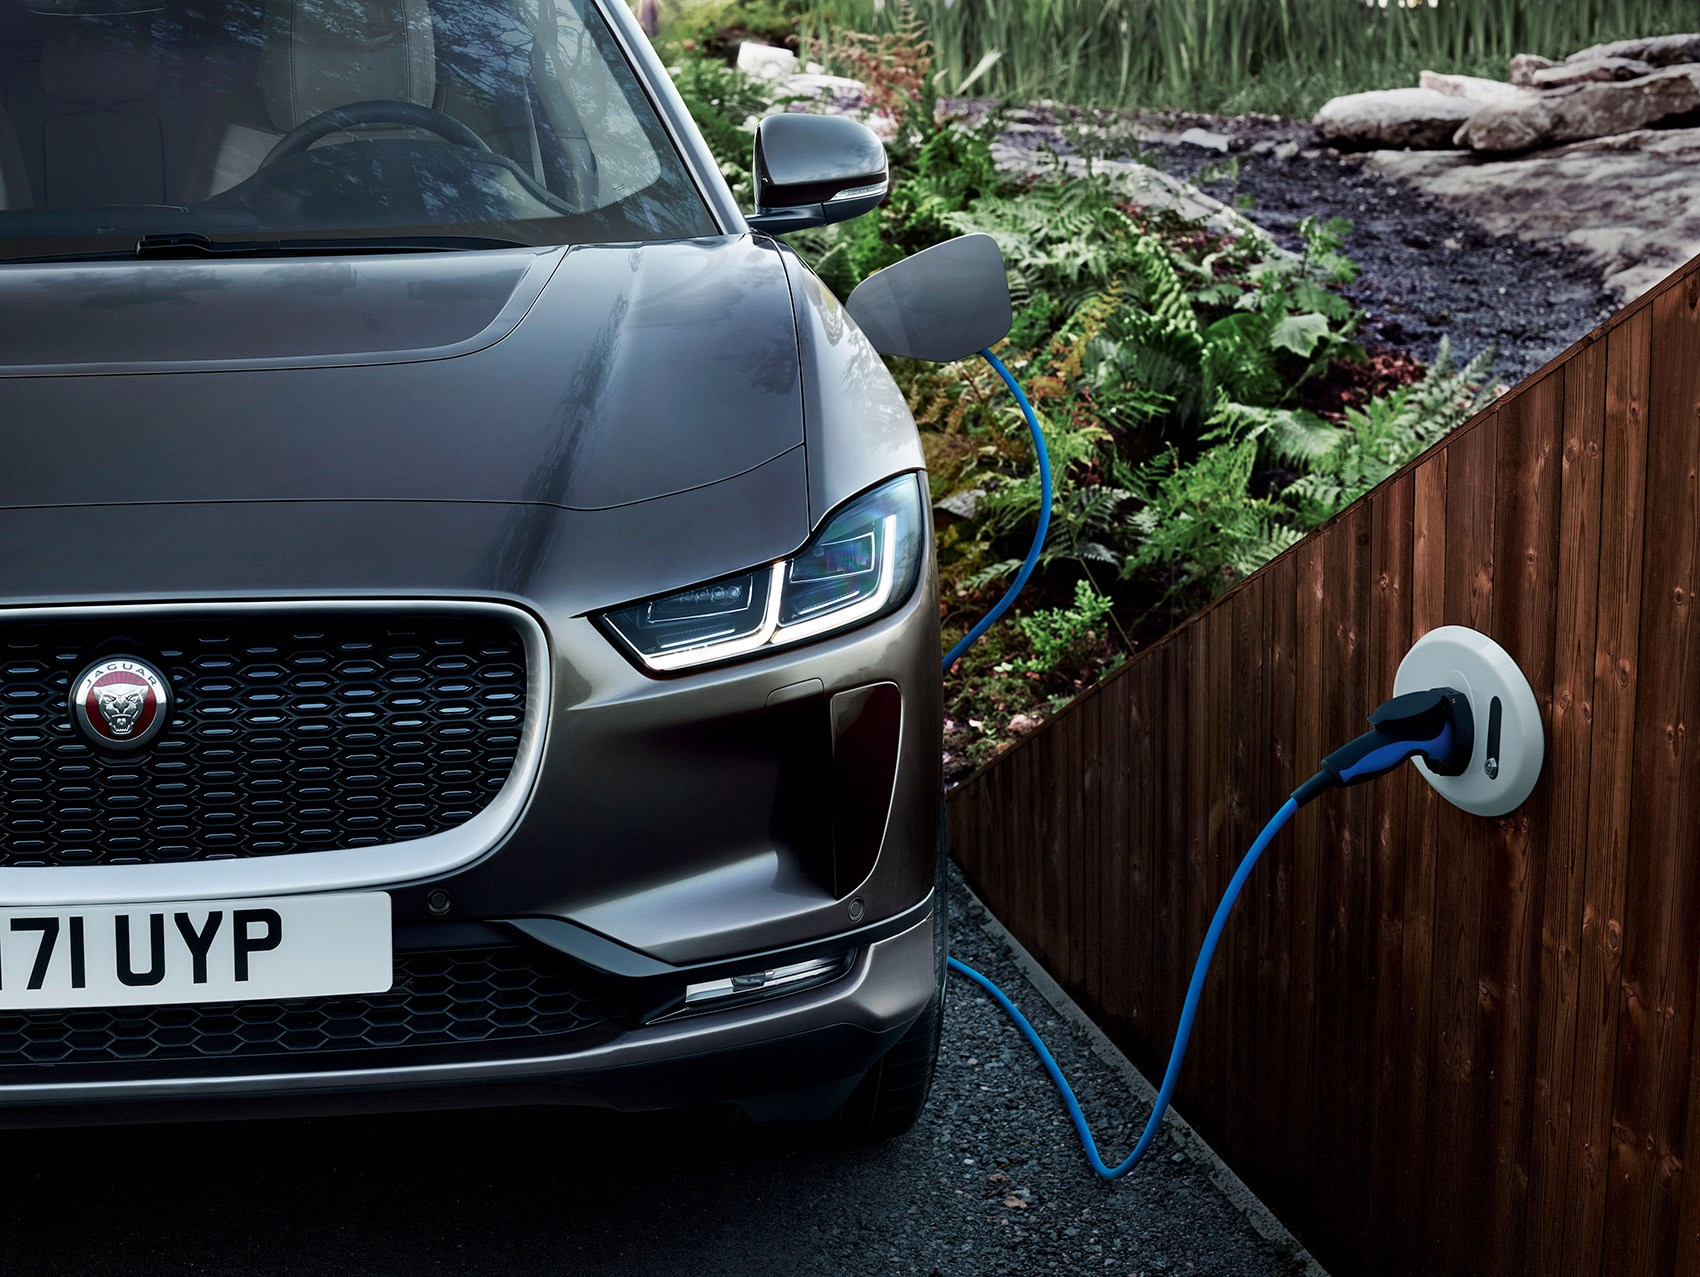 Britain S Best Electric Cars We Reveal Uk Smart Ev Picks